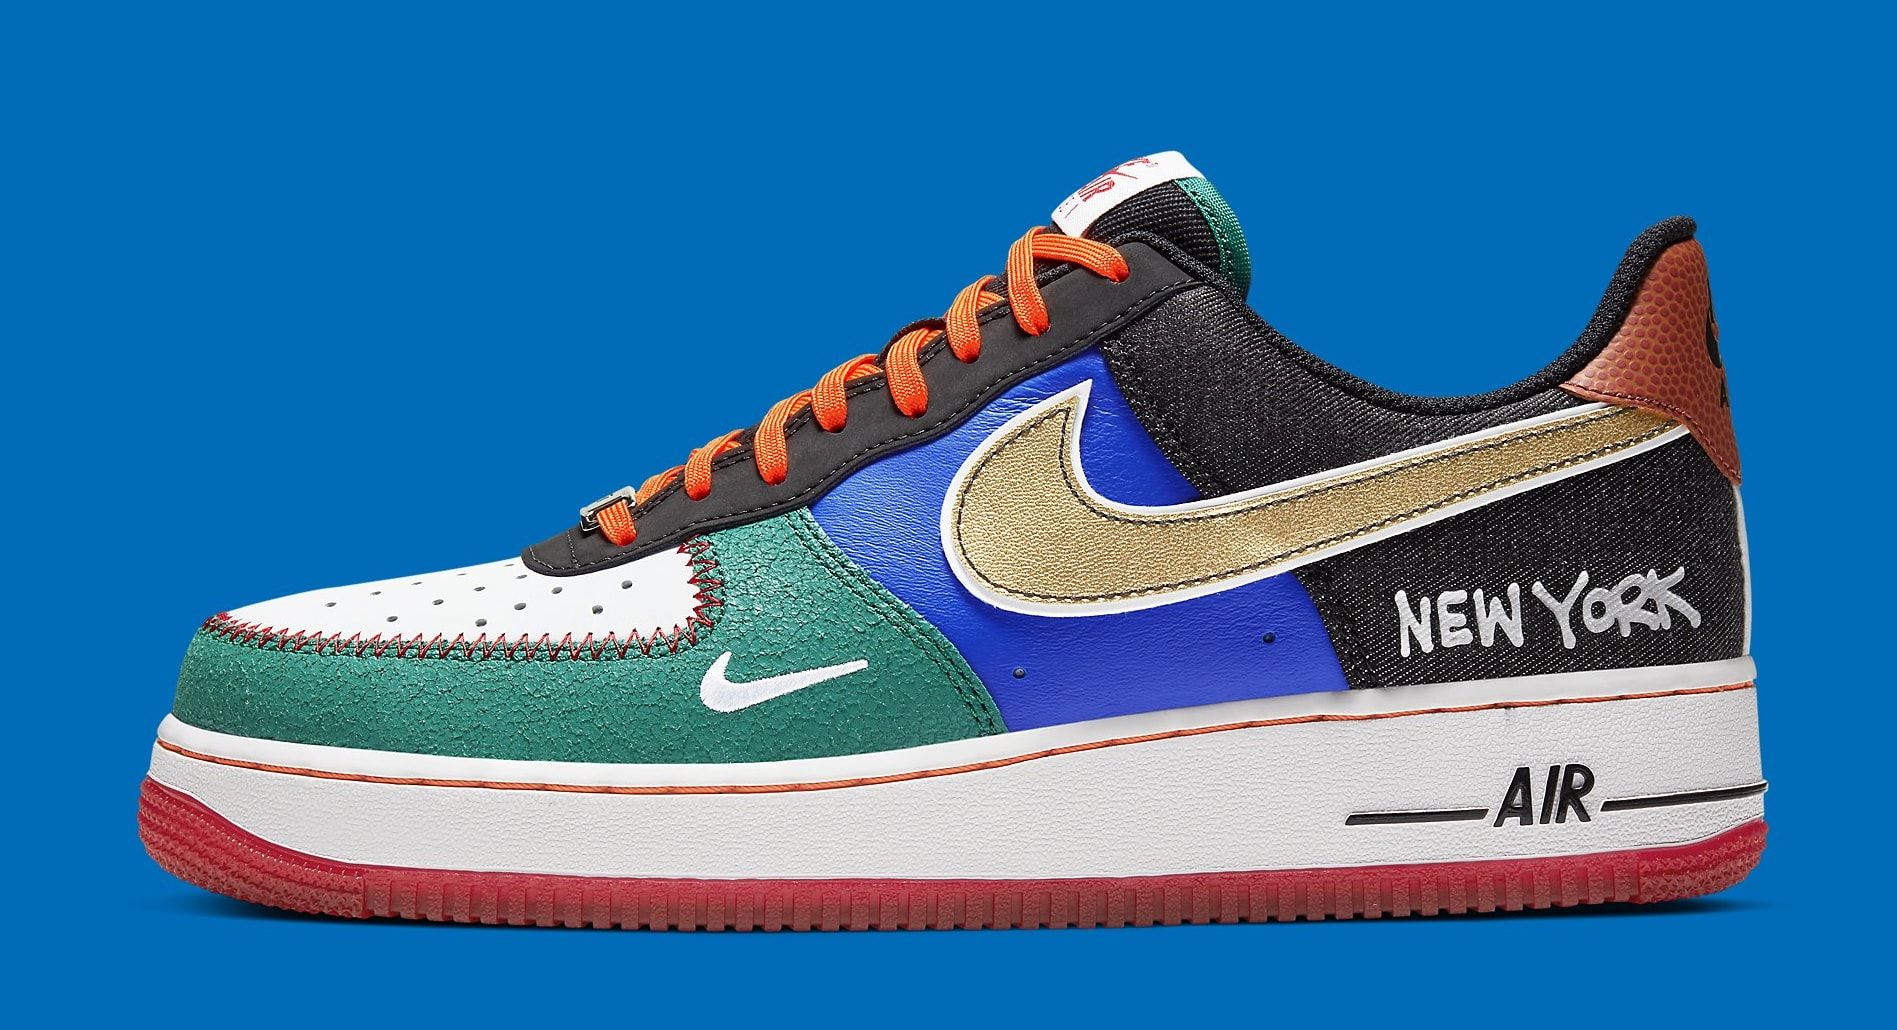 nike-air-force-1-low-what-the-nyc-ct3610-100-lateral